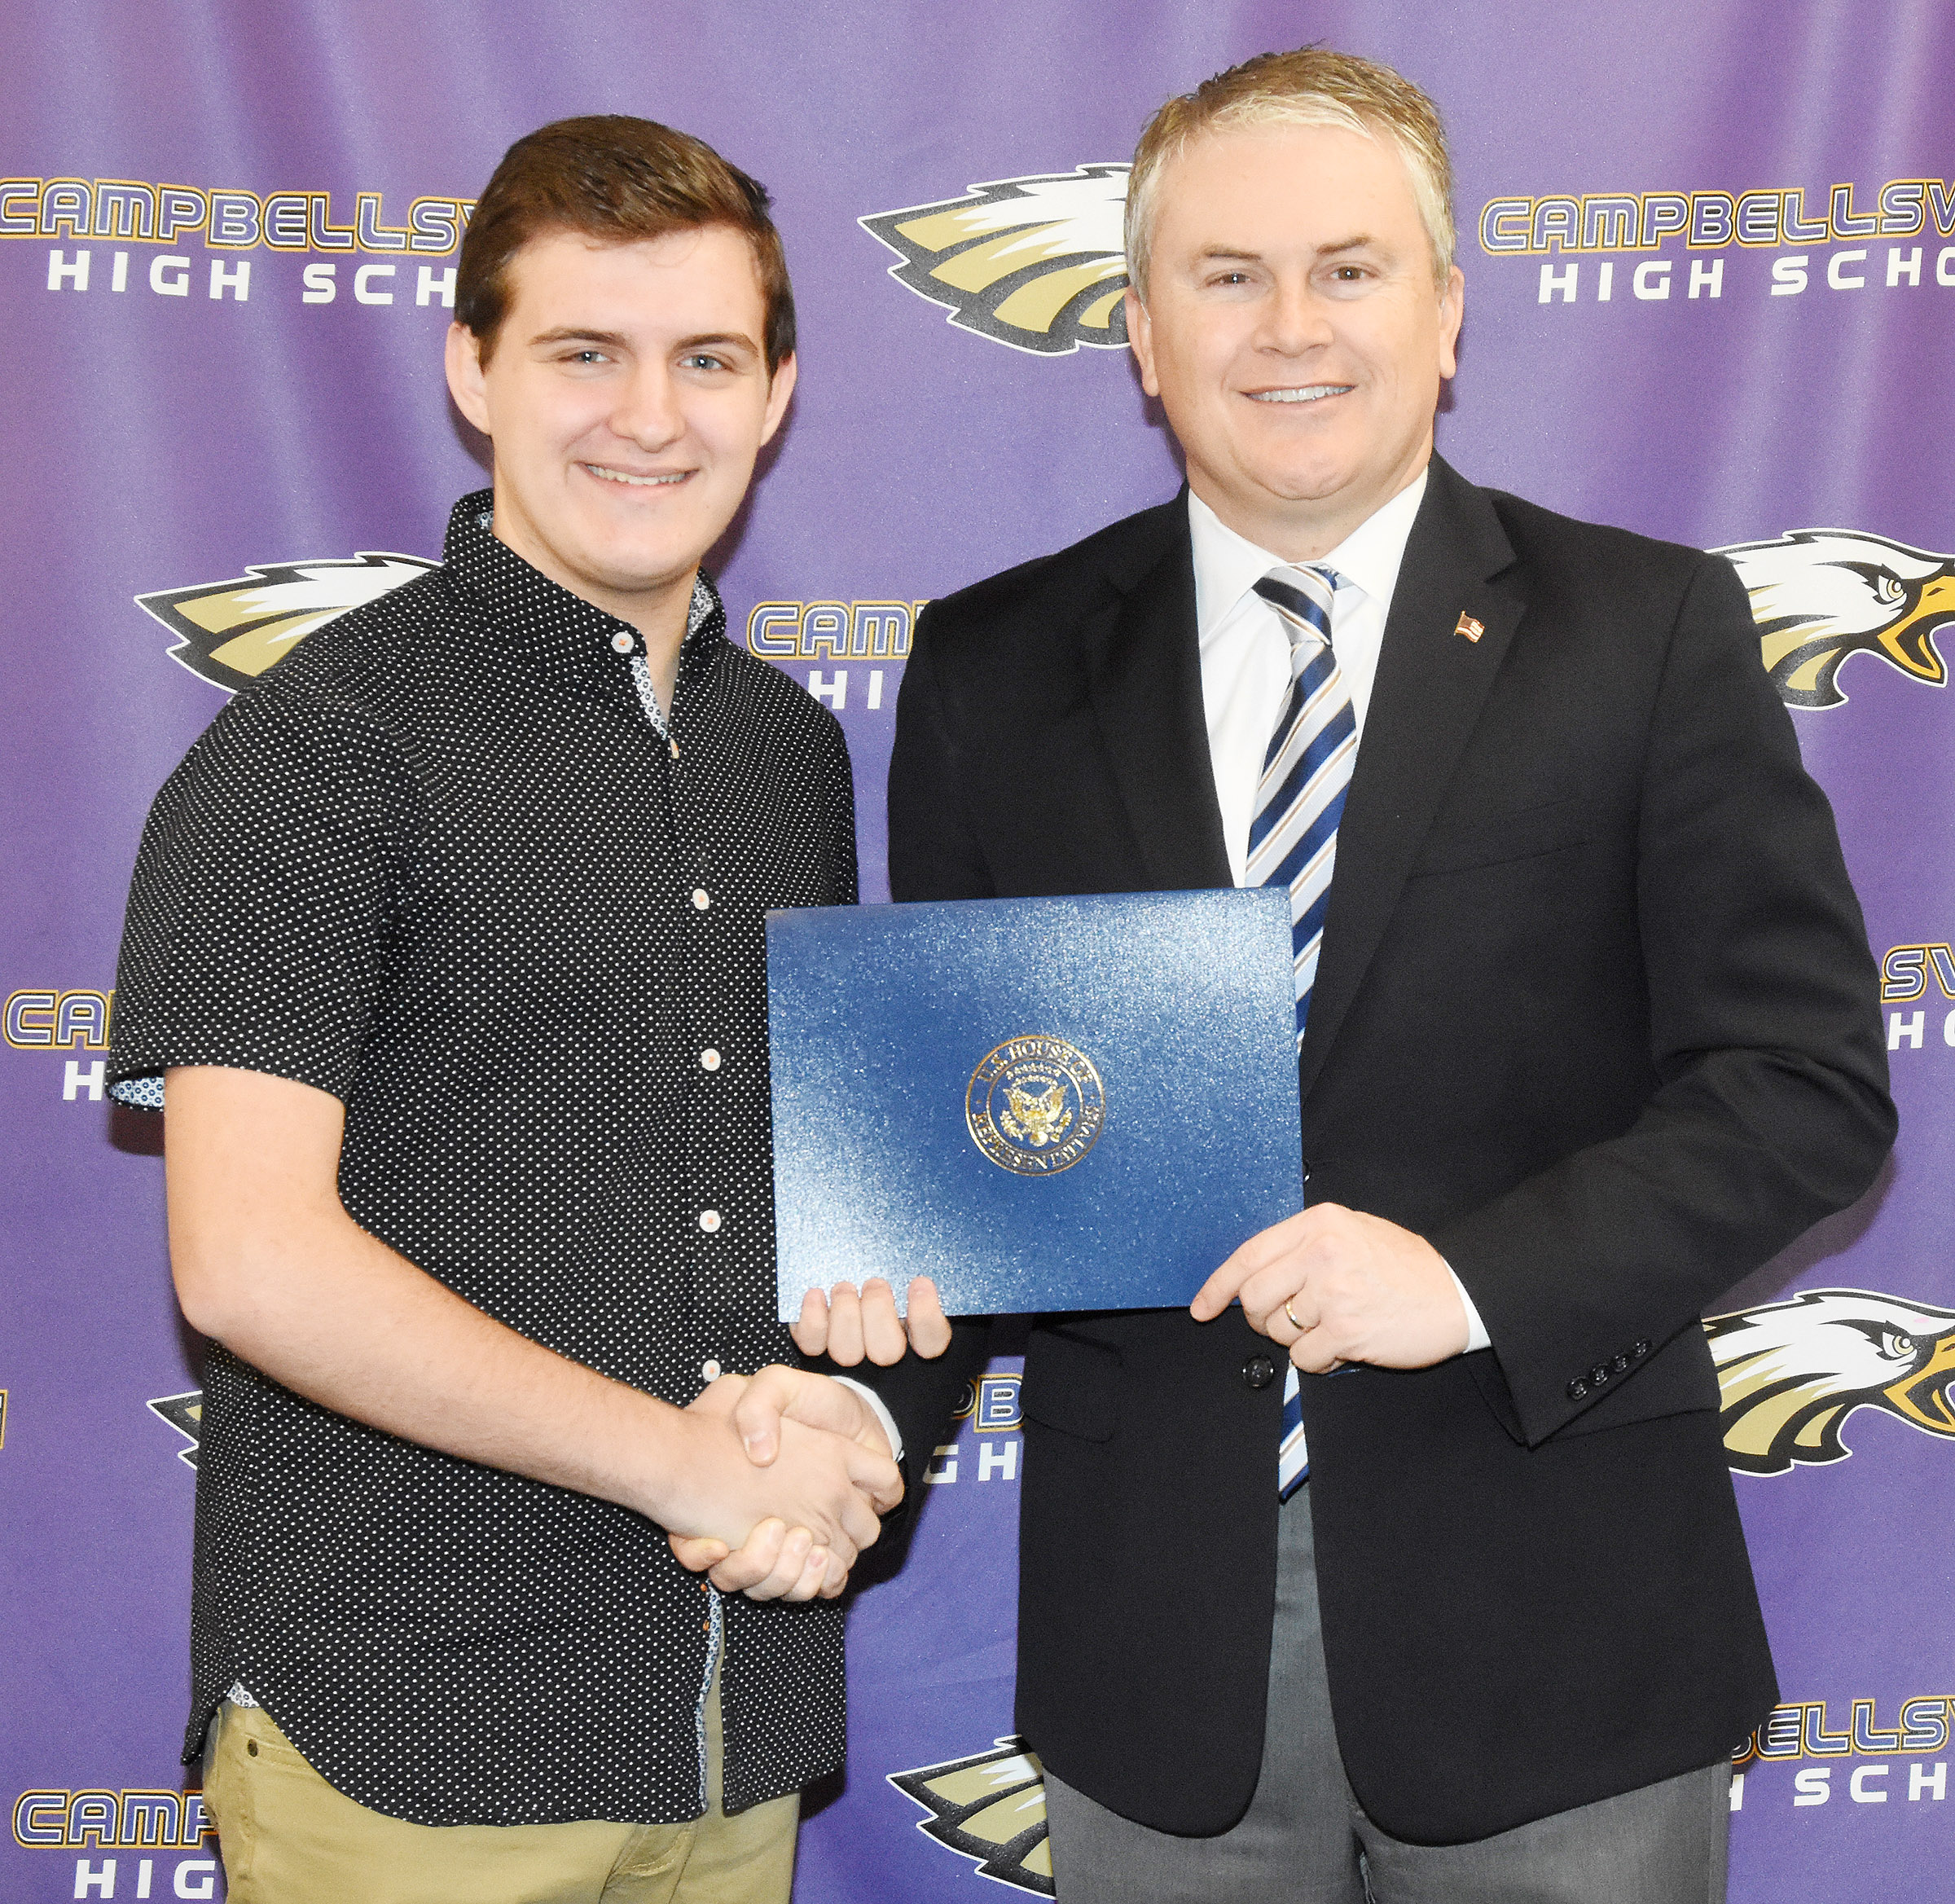 U.S. Rep. James Comer, R-Ky., visited CHS on Tuesday, Jan. 23, to meet with CHS AP computer science students and to honor CHS seniors Austin Fitzgerald, at left, and Christian Berry, who recently won the First District 2017 Congressional App Challenge.